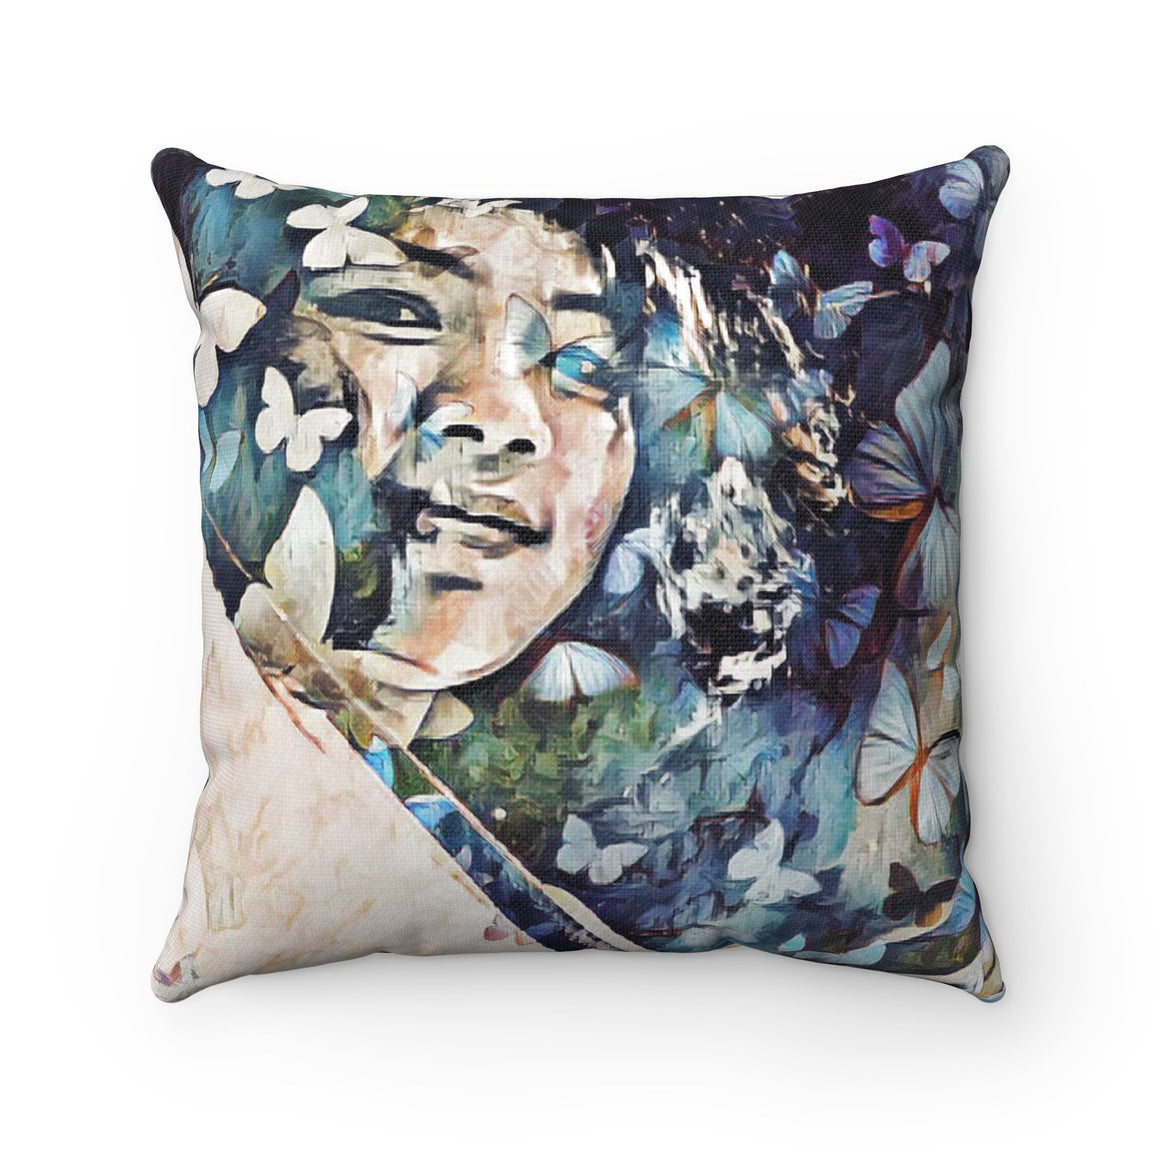 Levi Thang Vintage Face Design P Spun Polyester Square Pillow Case